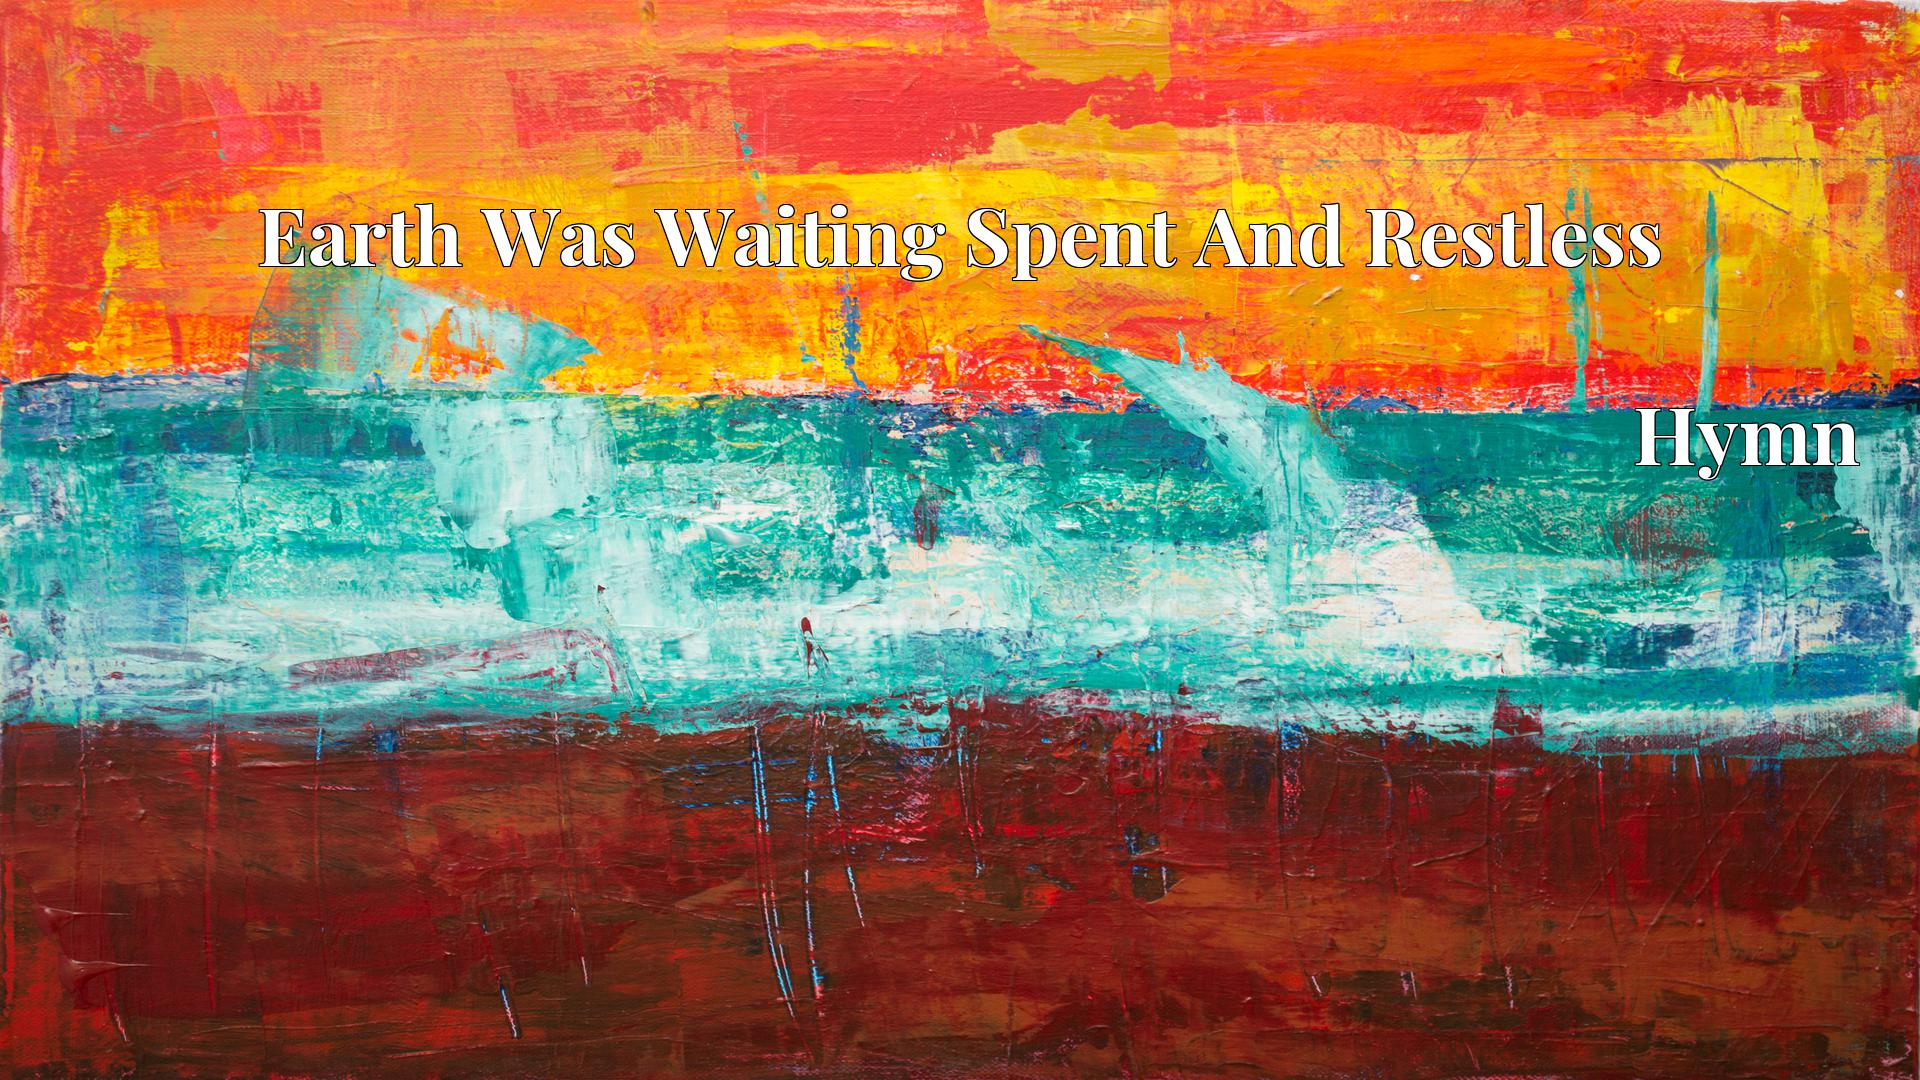 Earth Was Waiting Spent And Restless - Hymn